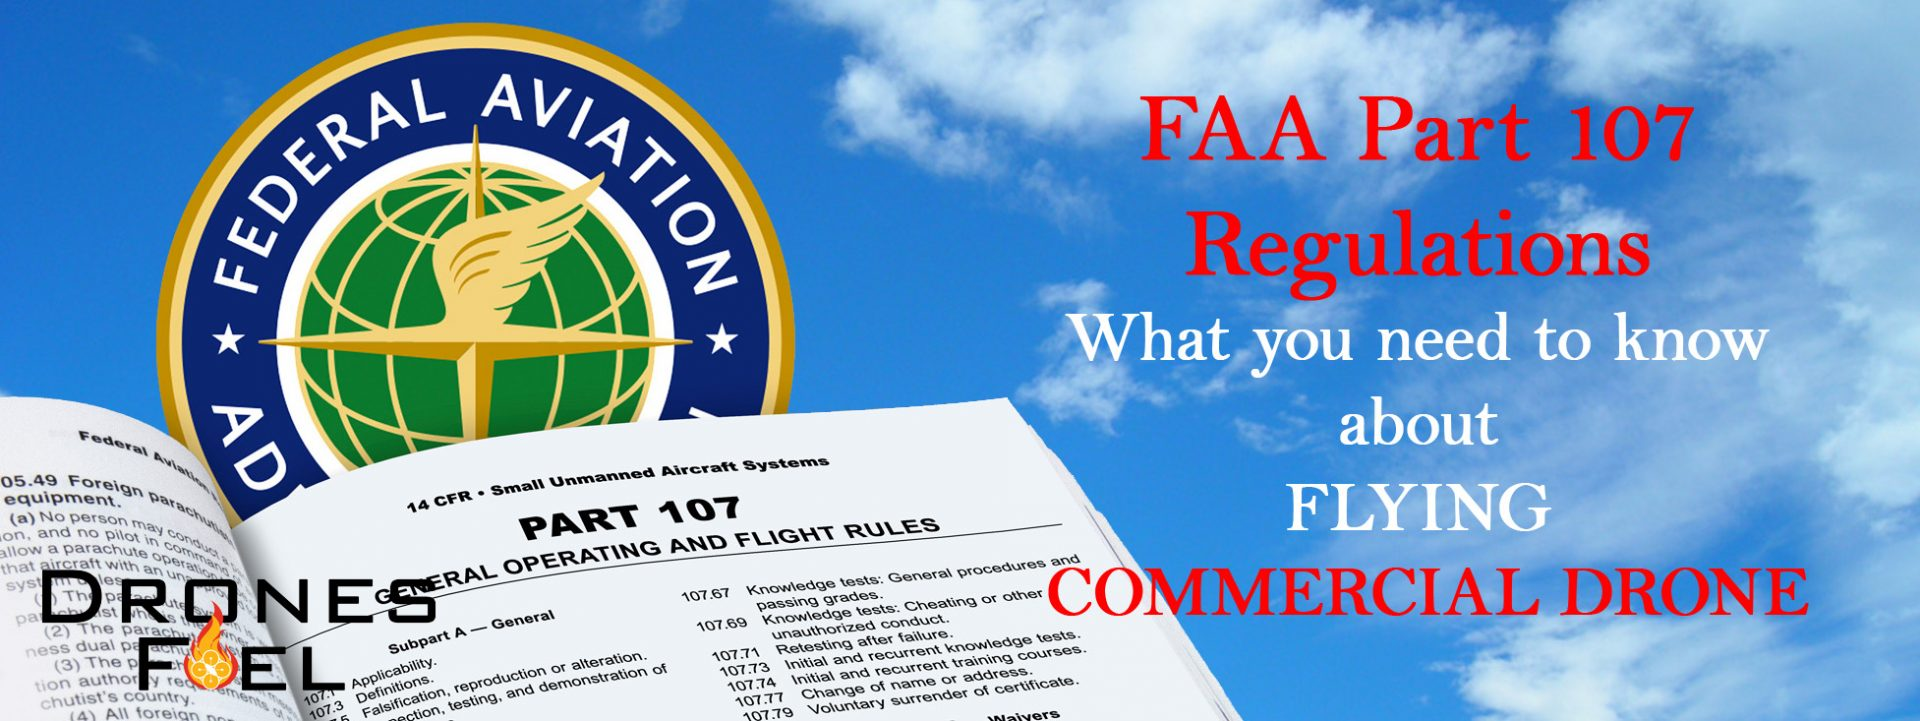 FAA Part 107 Regulations. What you need to know about ...